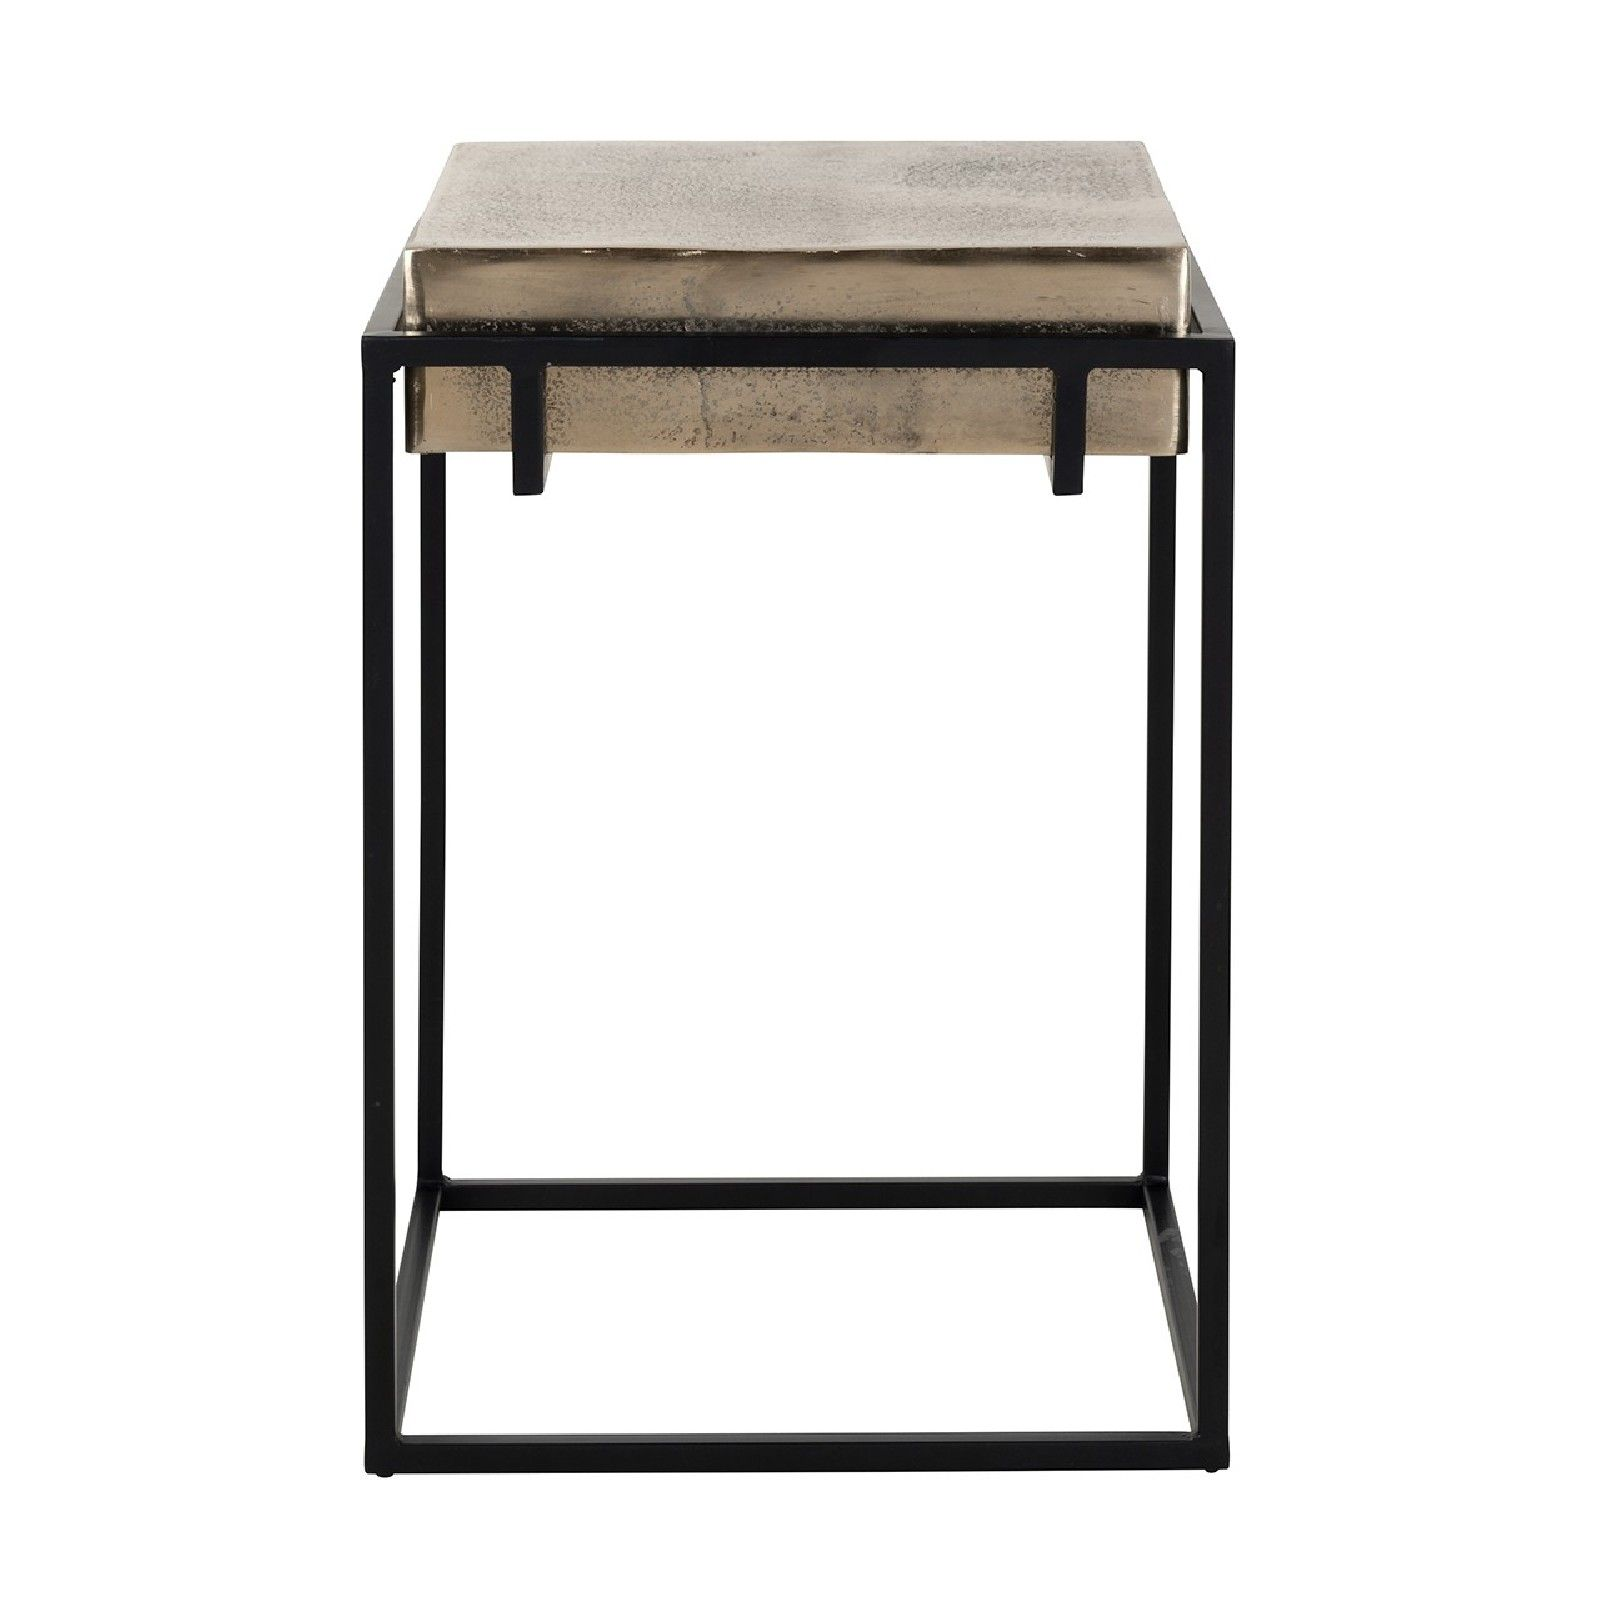 Table d'appoint Calloway champagne or Meuble Déco Tendance - 571